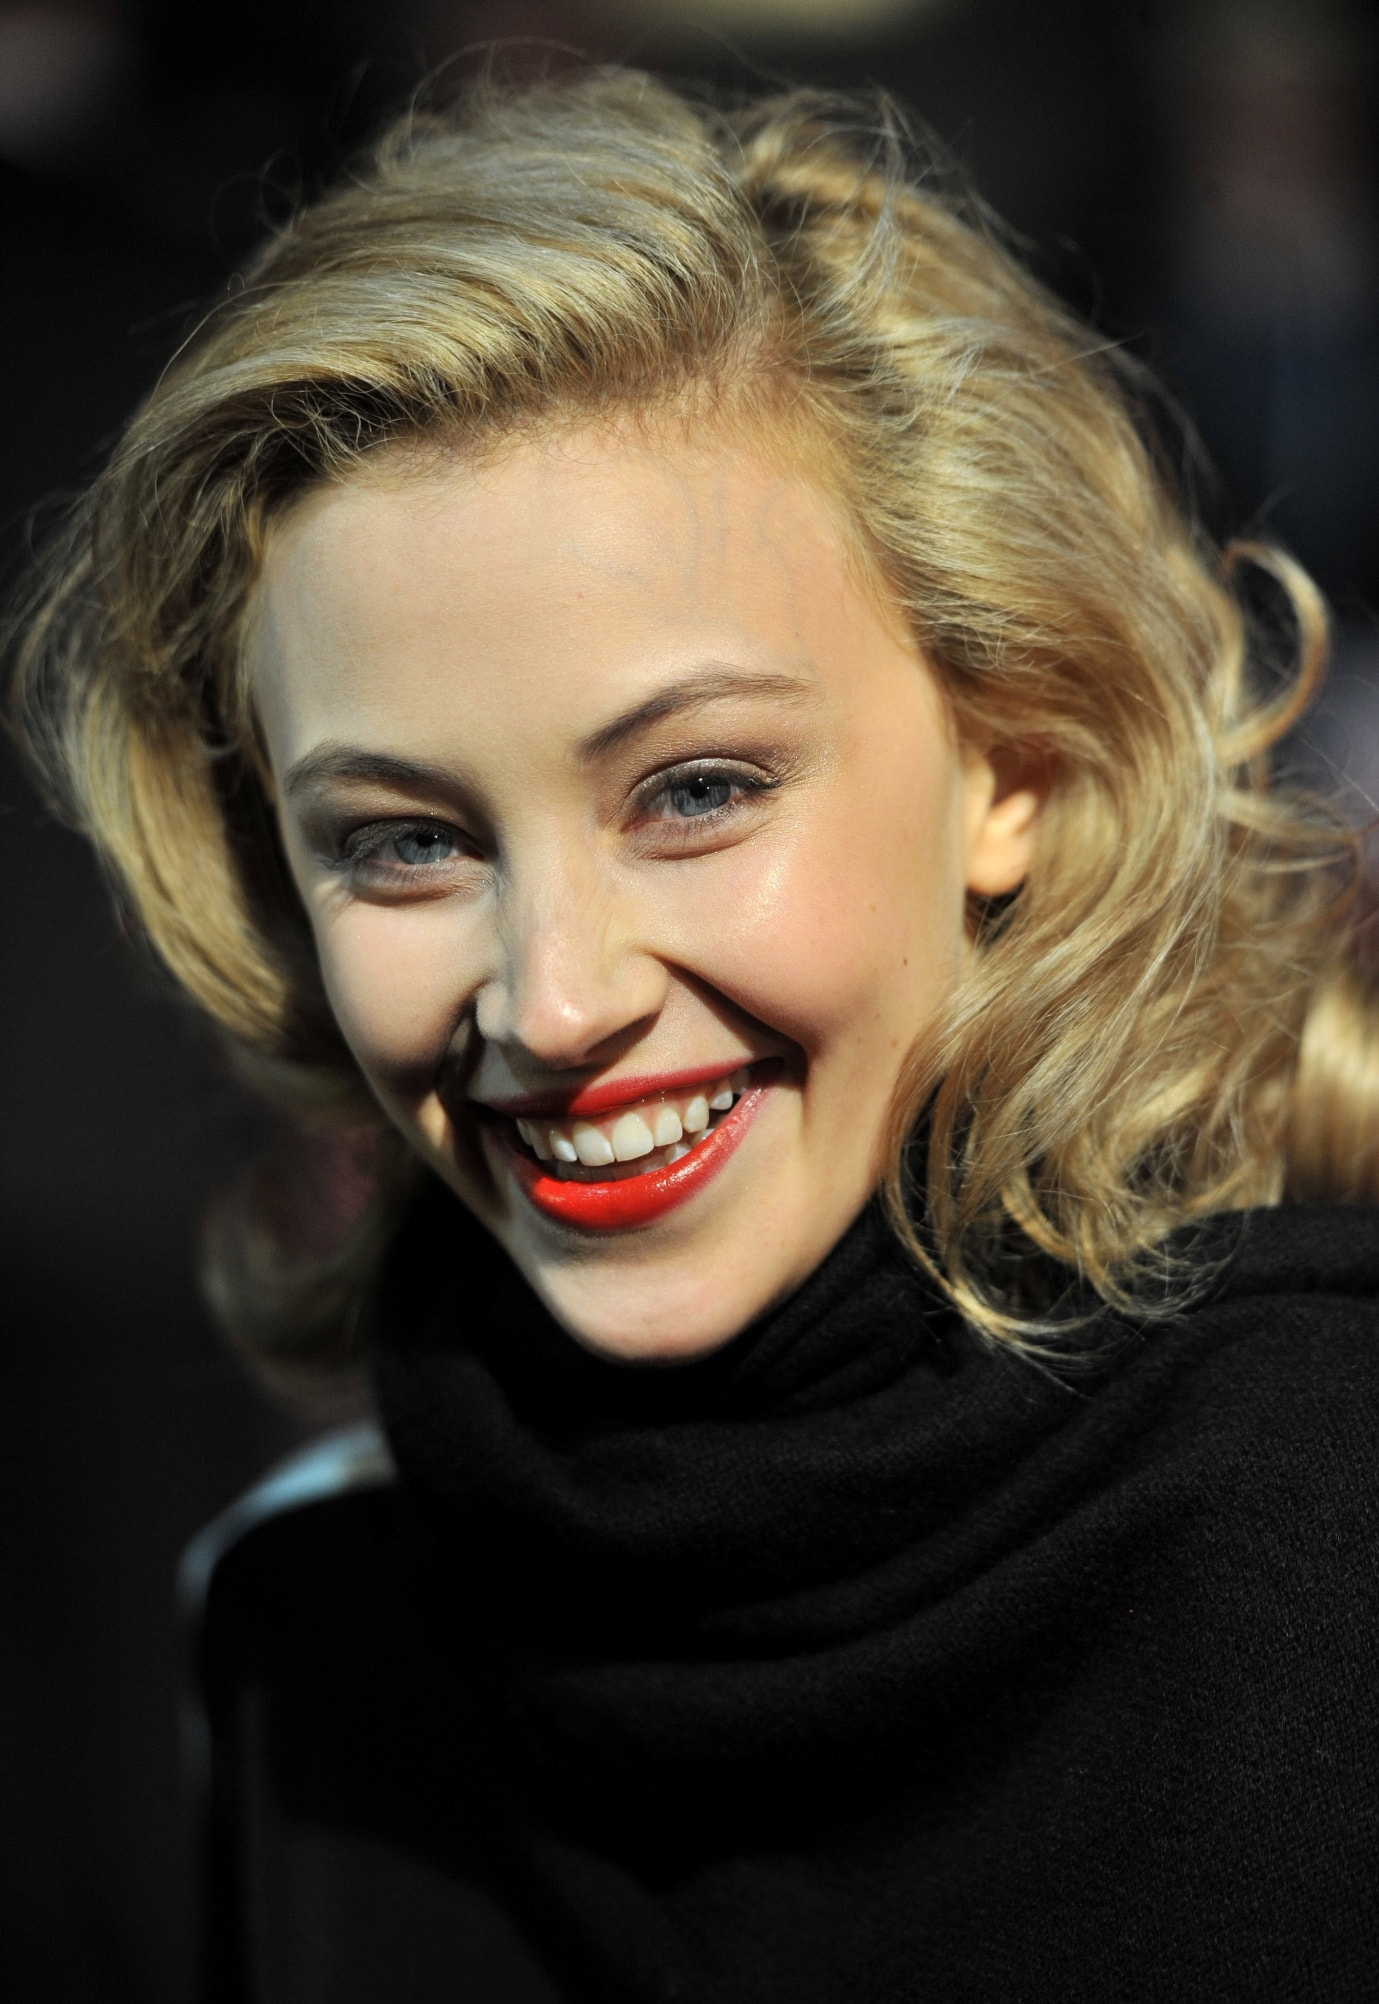 Sarah Gadons For mobile